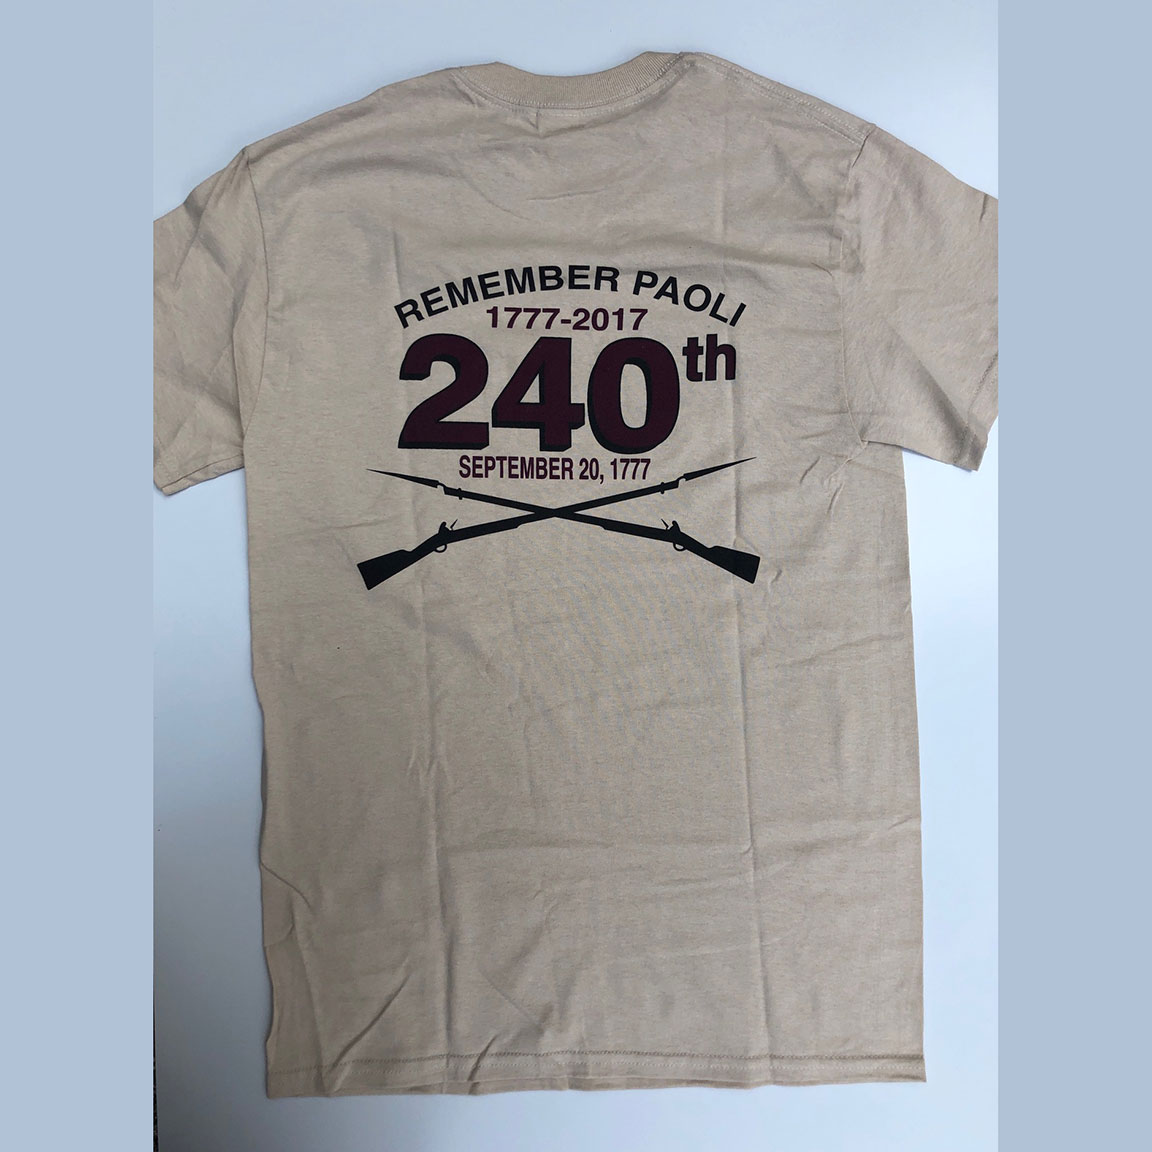 Remember Paoli 240th Anniversary Shirt – Adult, Sand